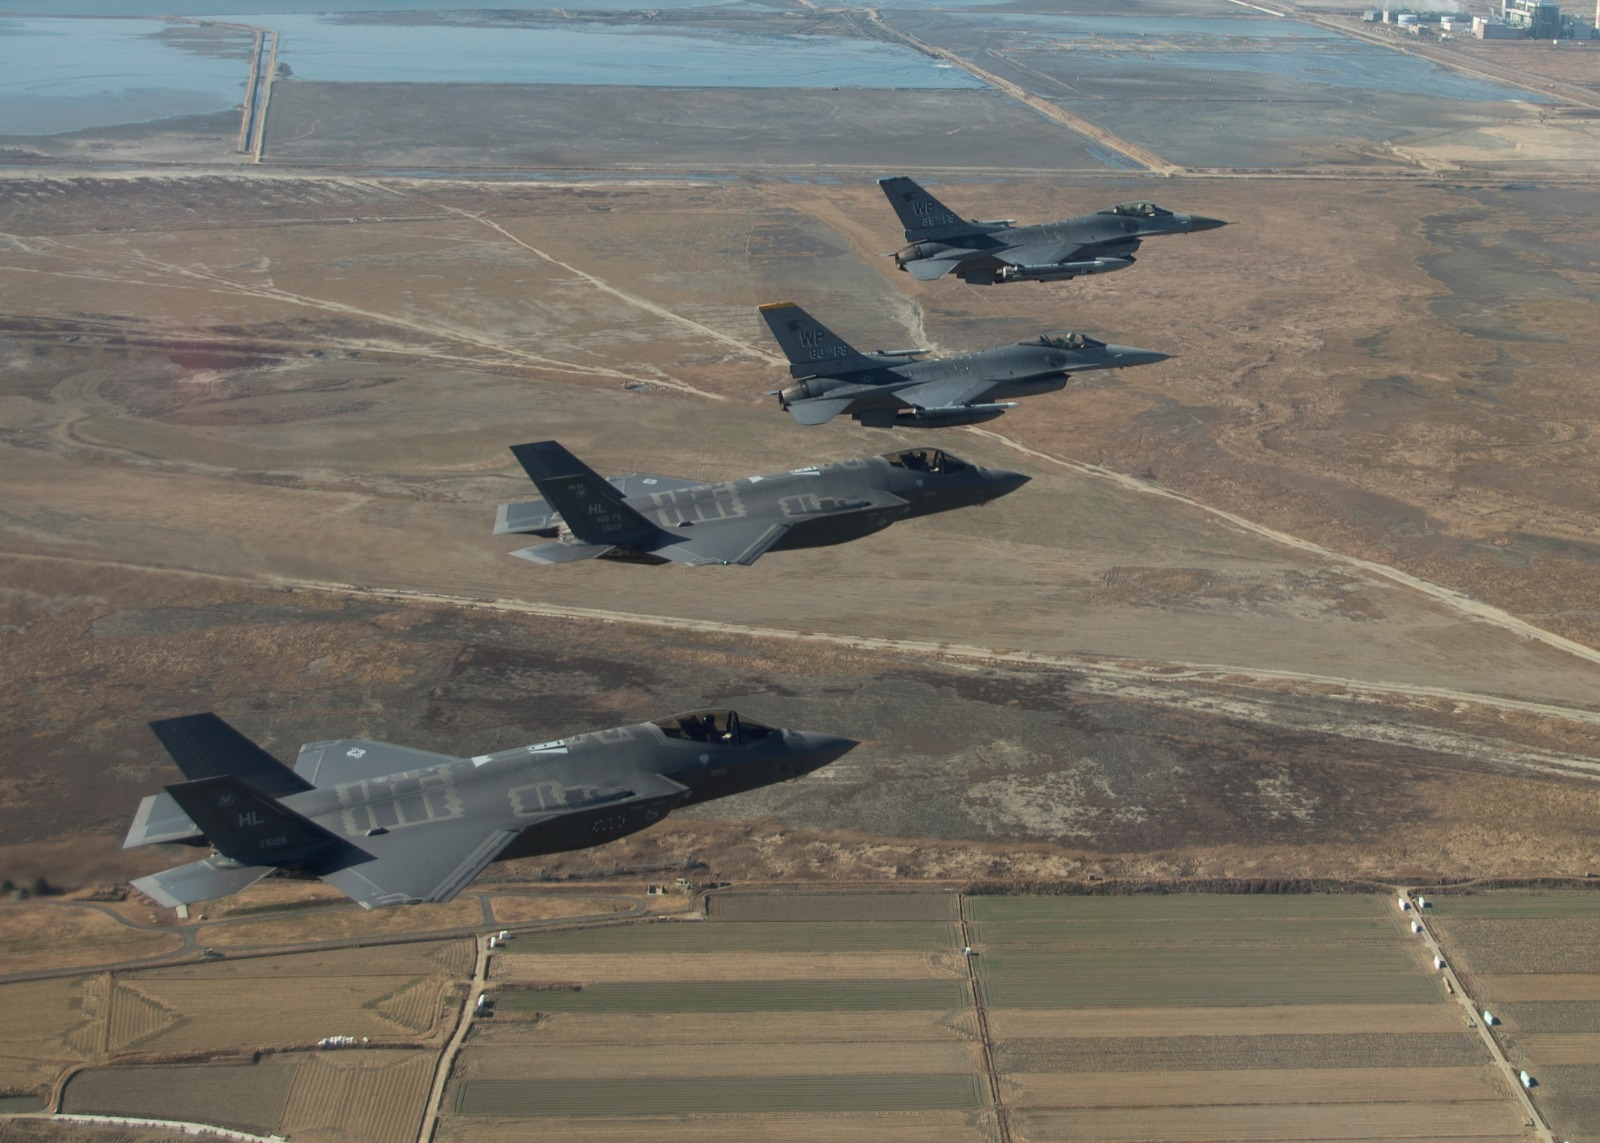 Israeli Super Tough F-35 Stealth Fighters Are Shaking Up the Middle